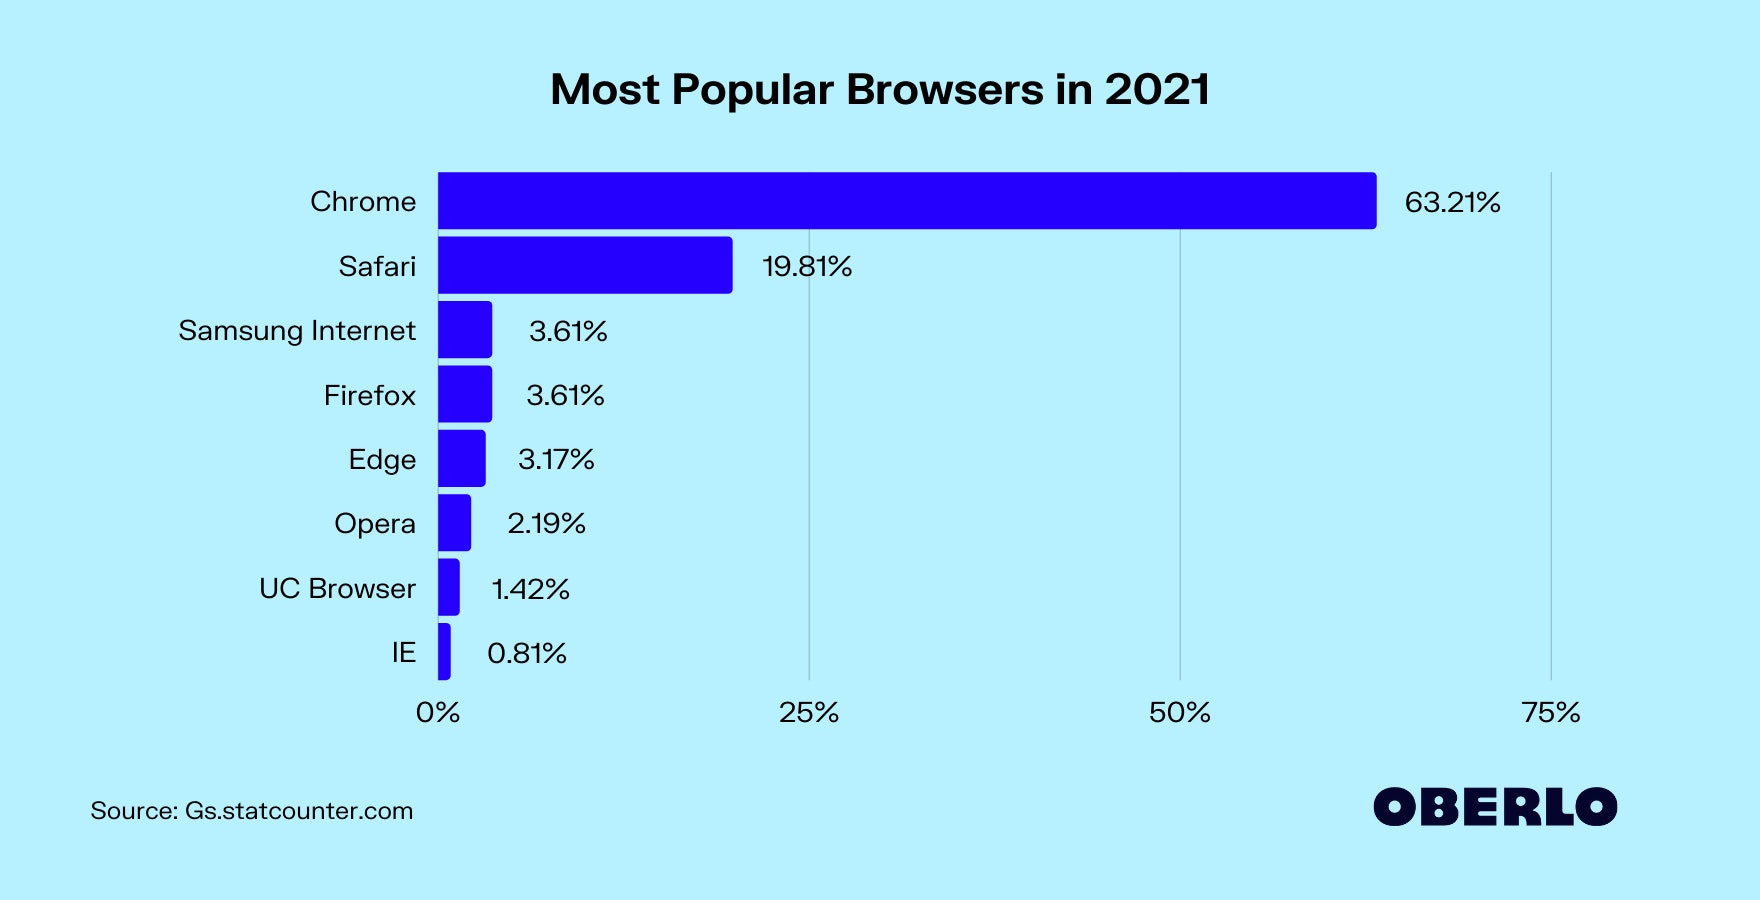 Most Popular Browsers in 2021